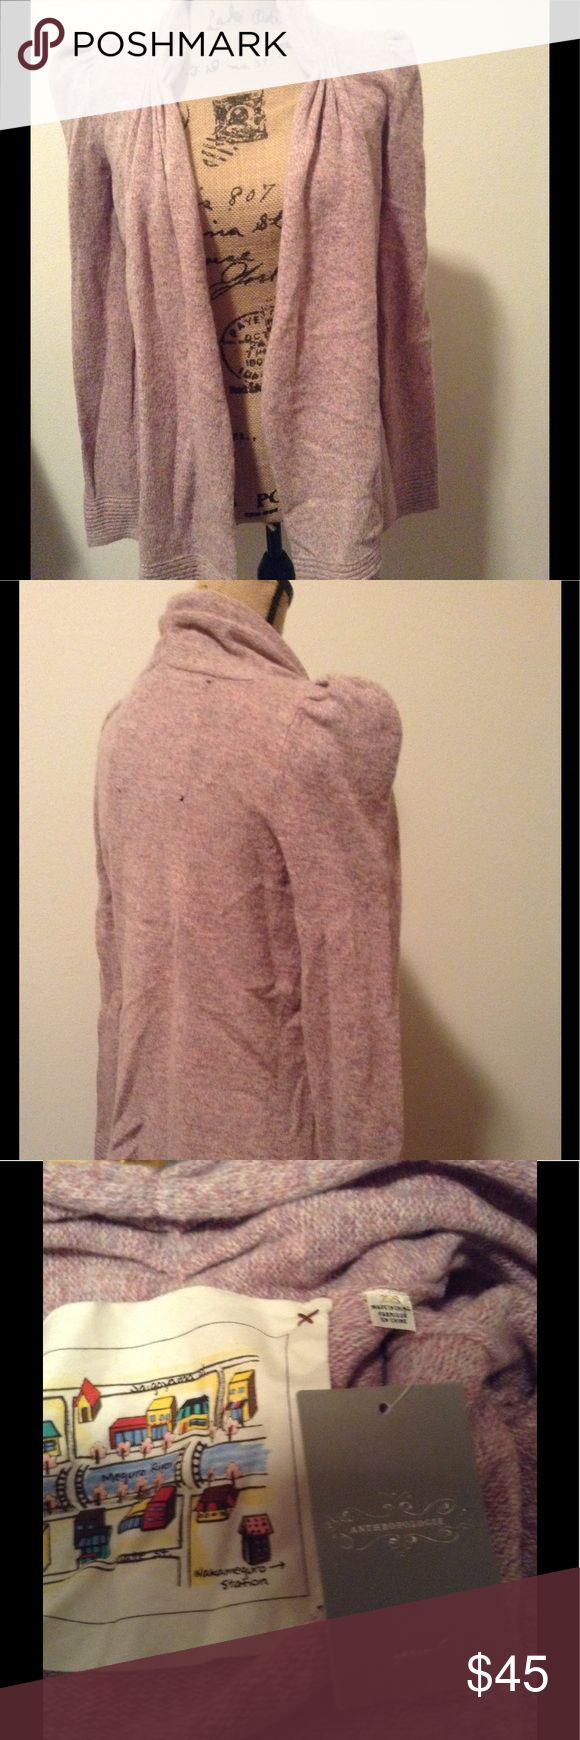 NWT Anthropologie Lady's Choice Cardigan Pink wool blend drape front cardigan. Open front size XS Anthropologie Sweaters Cardigans